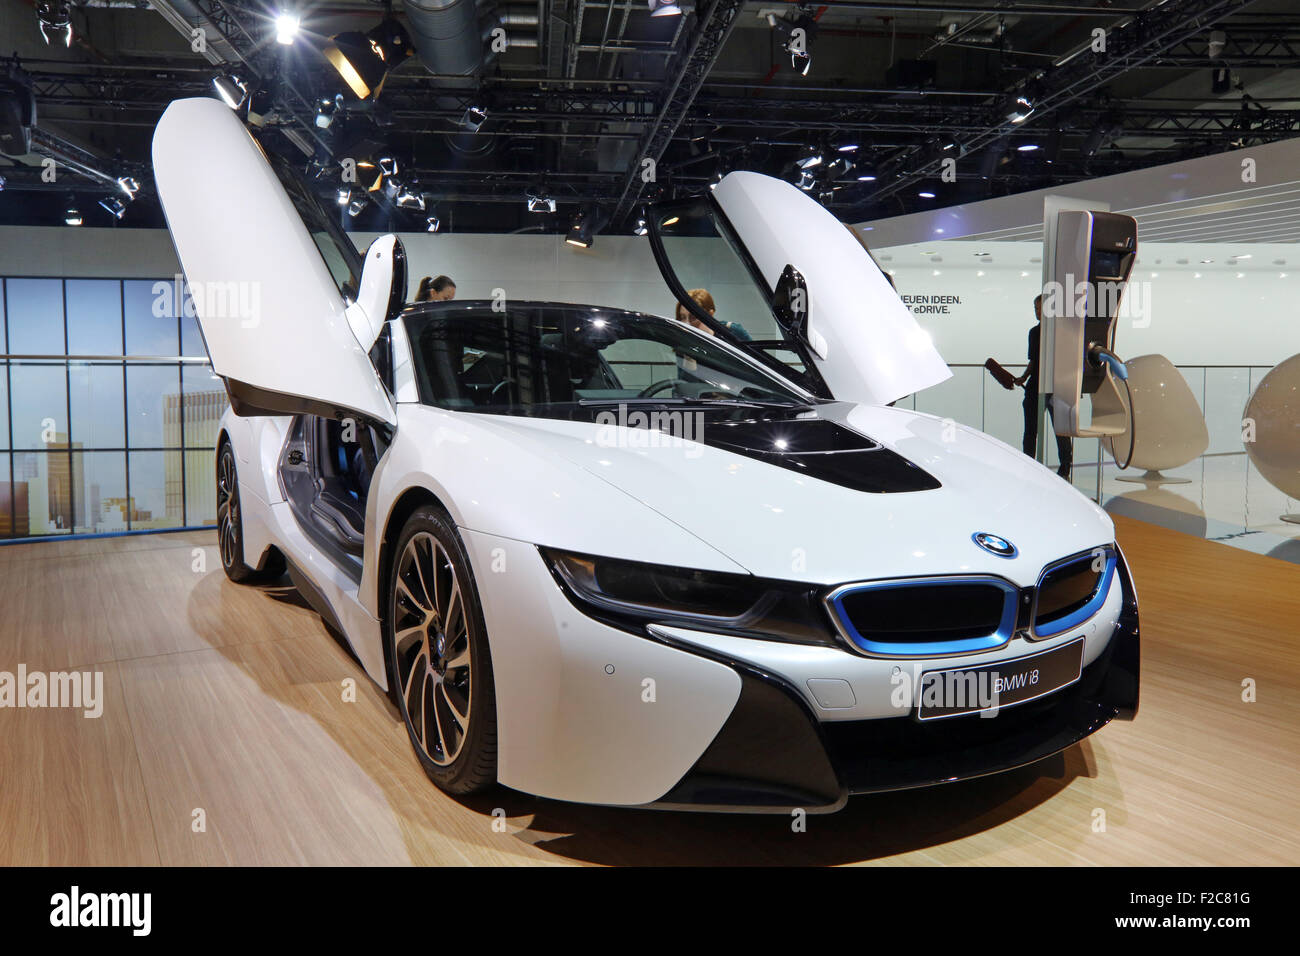 Frankfurt/M, 16.09.2015   Hybrid Concept Car BMW I8 At The BMW